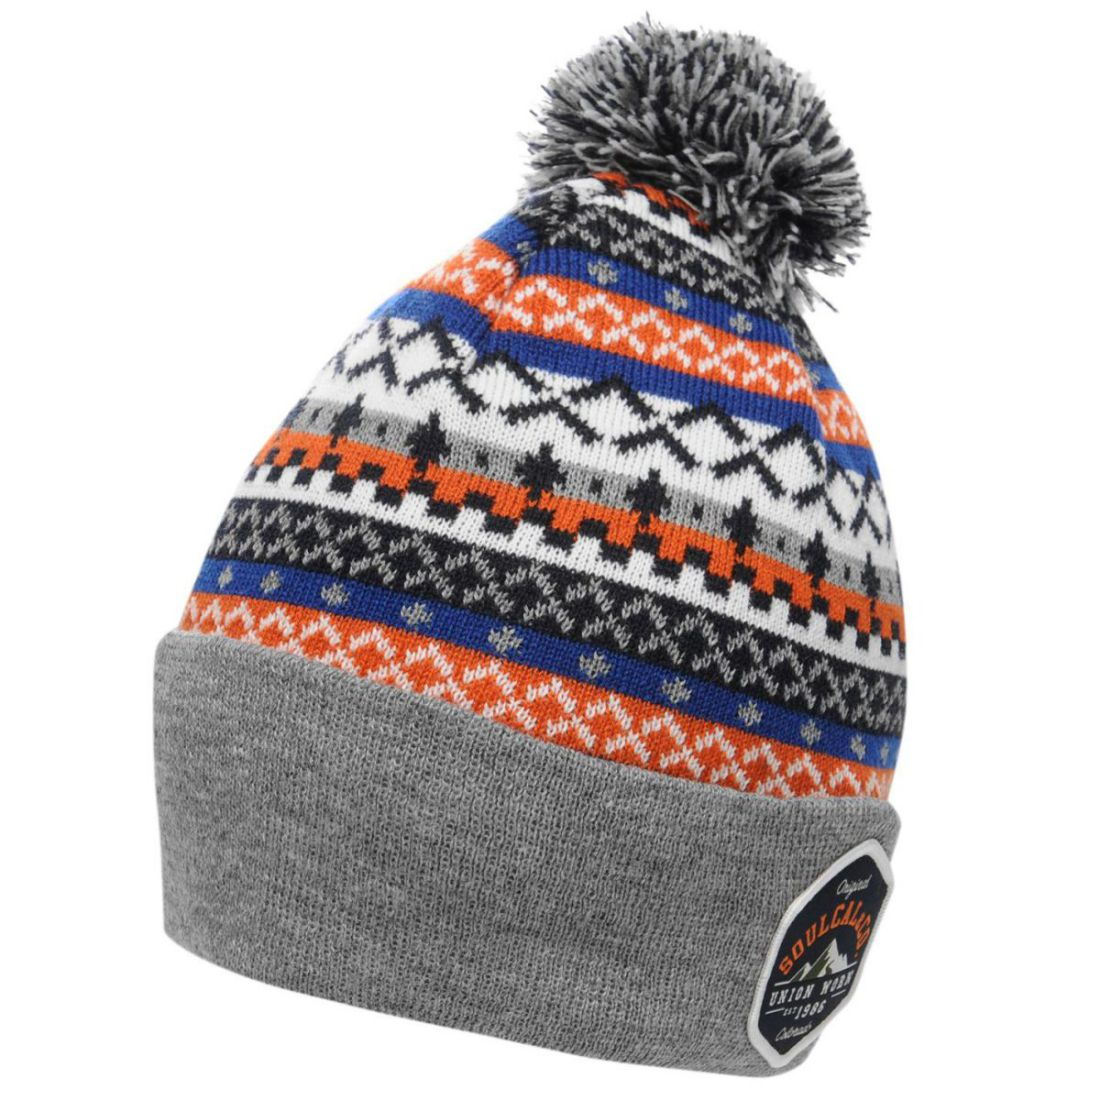 Knitting Pattern Bobble Hat Details About Soulcal Mens Aztec Bobble Hat Beanie Pattern Warm Print Knitted